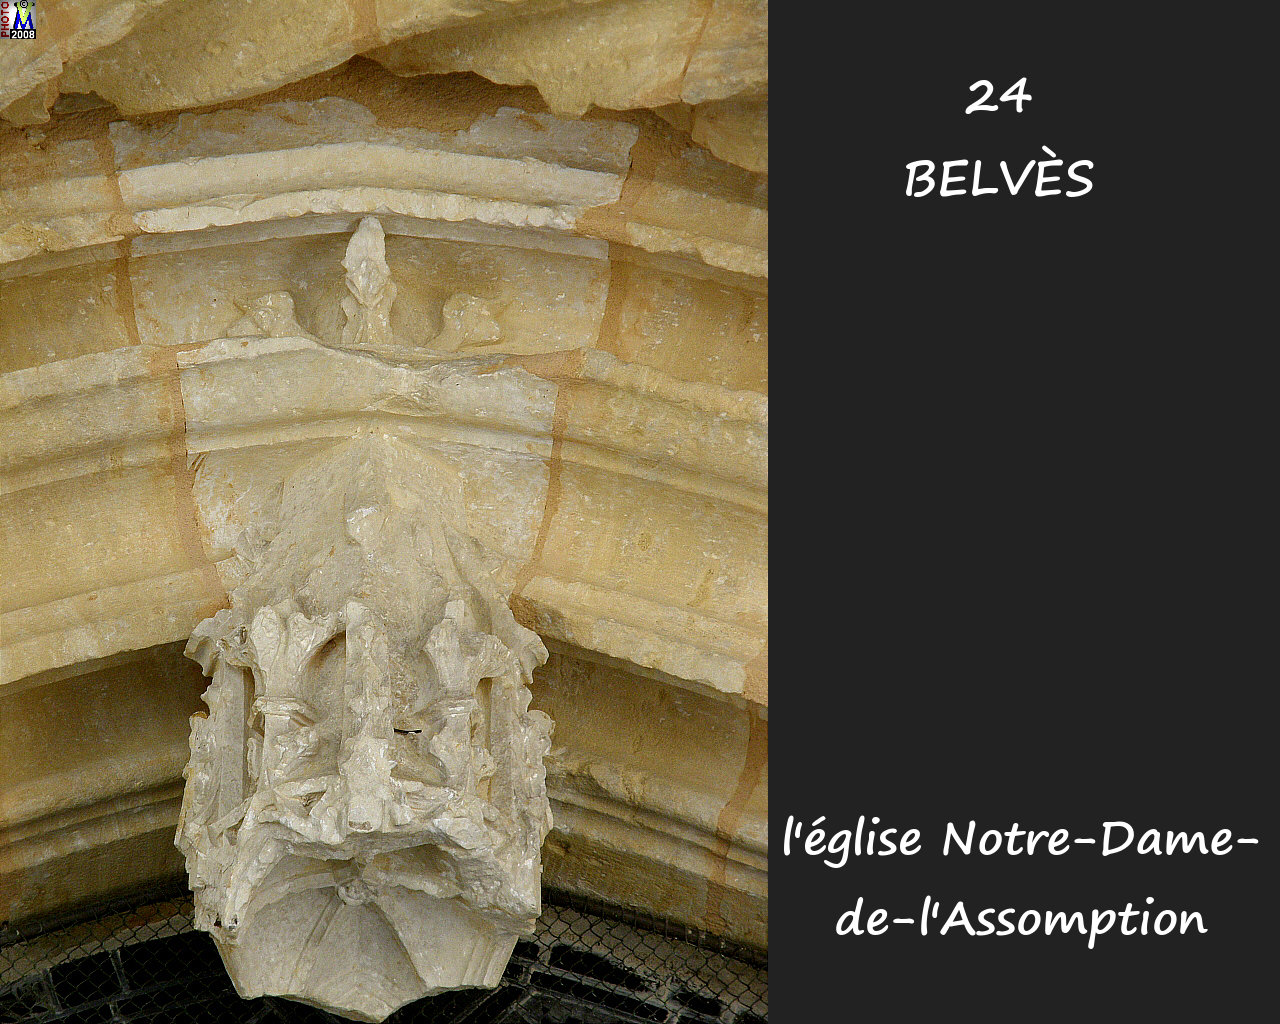 24BELVES_eglise_114.jpg